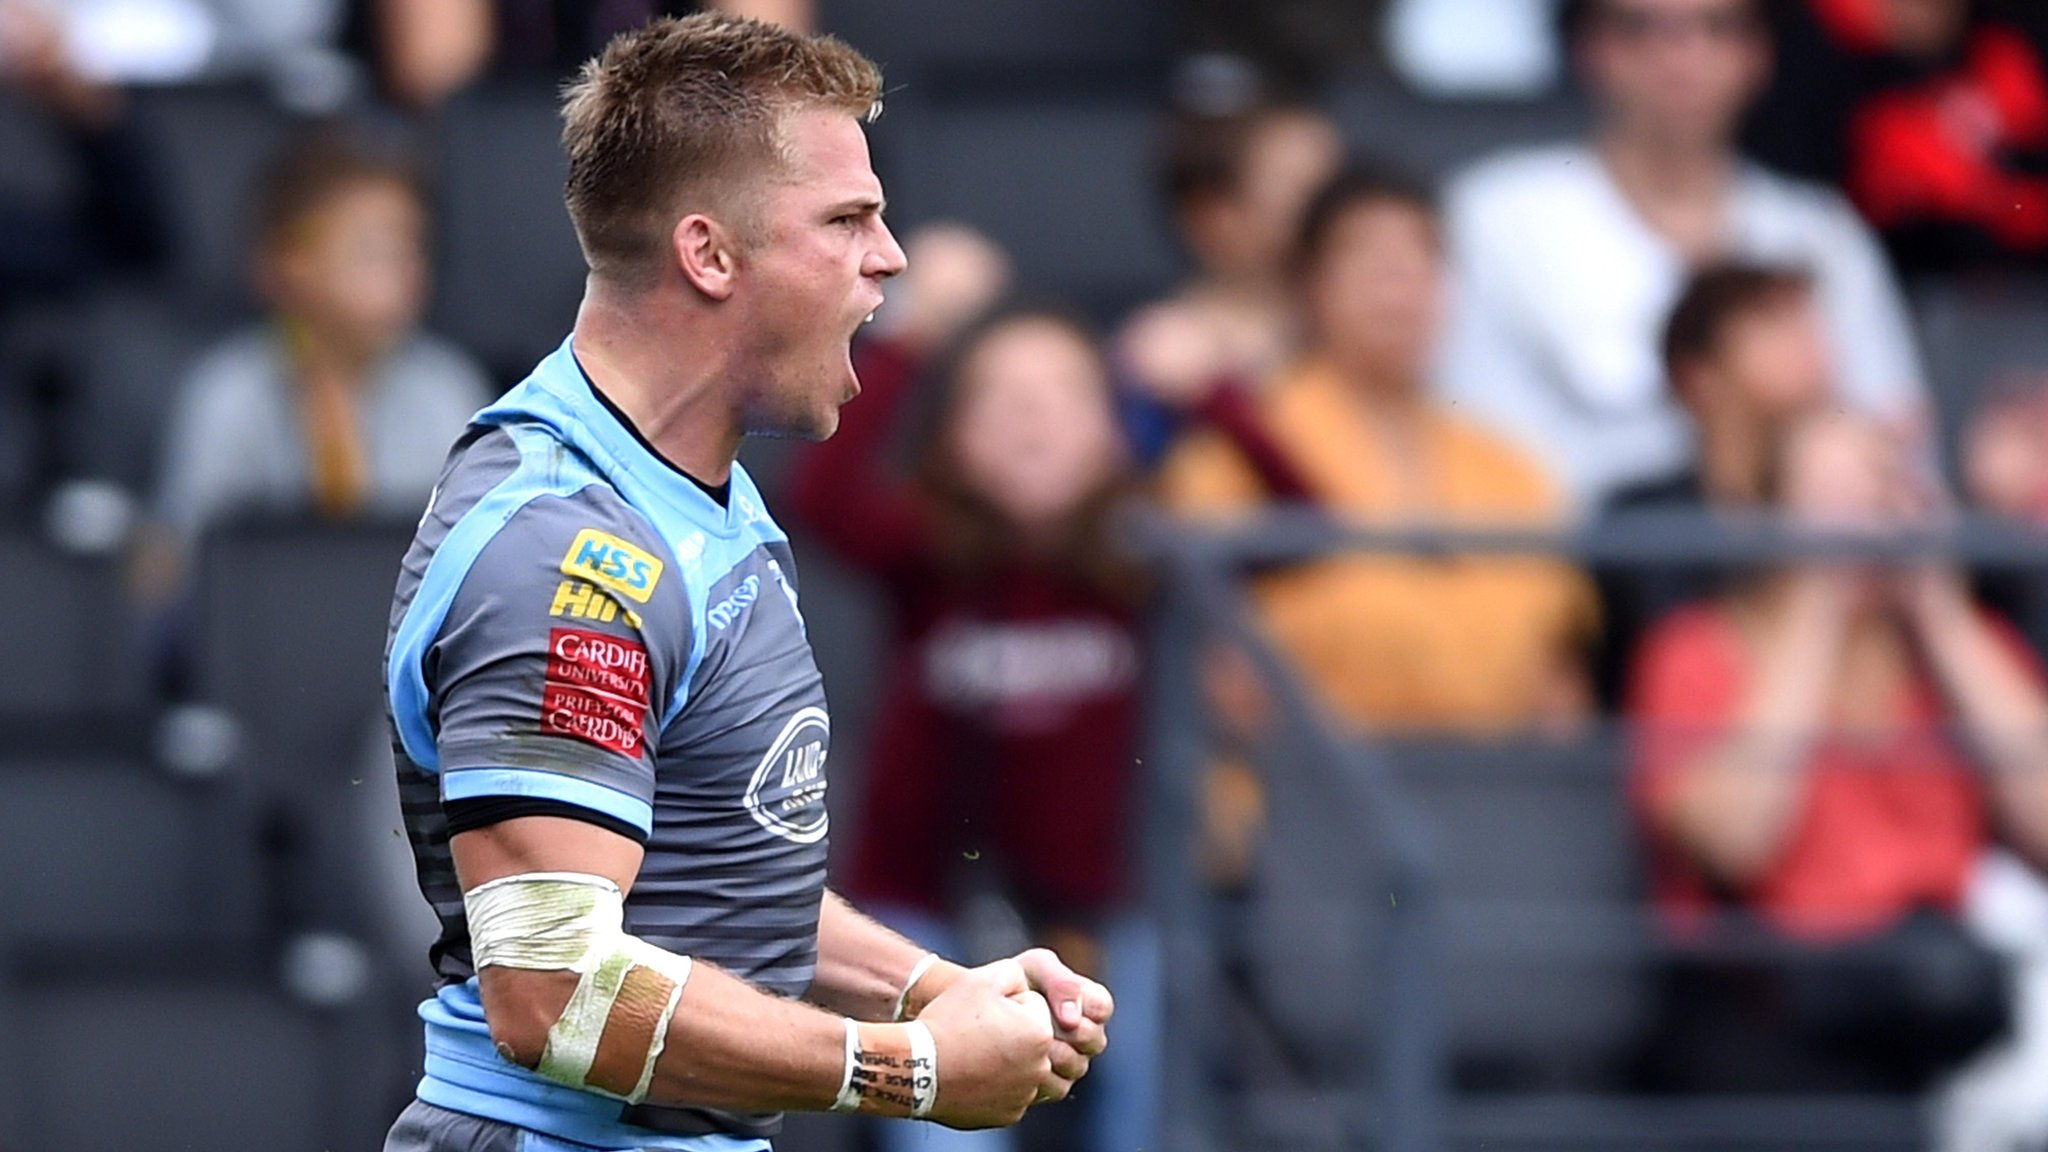 Anscombe leads Cardiff Blues to win over Lyon